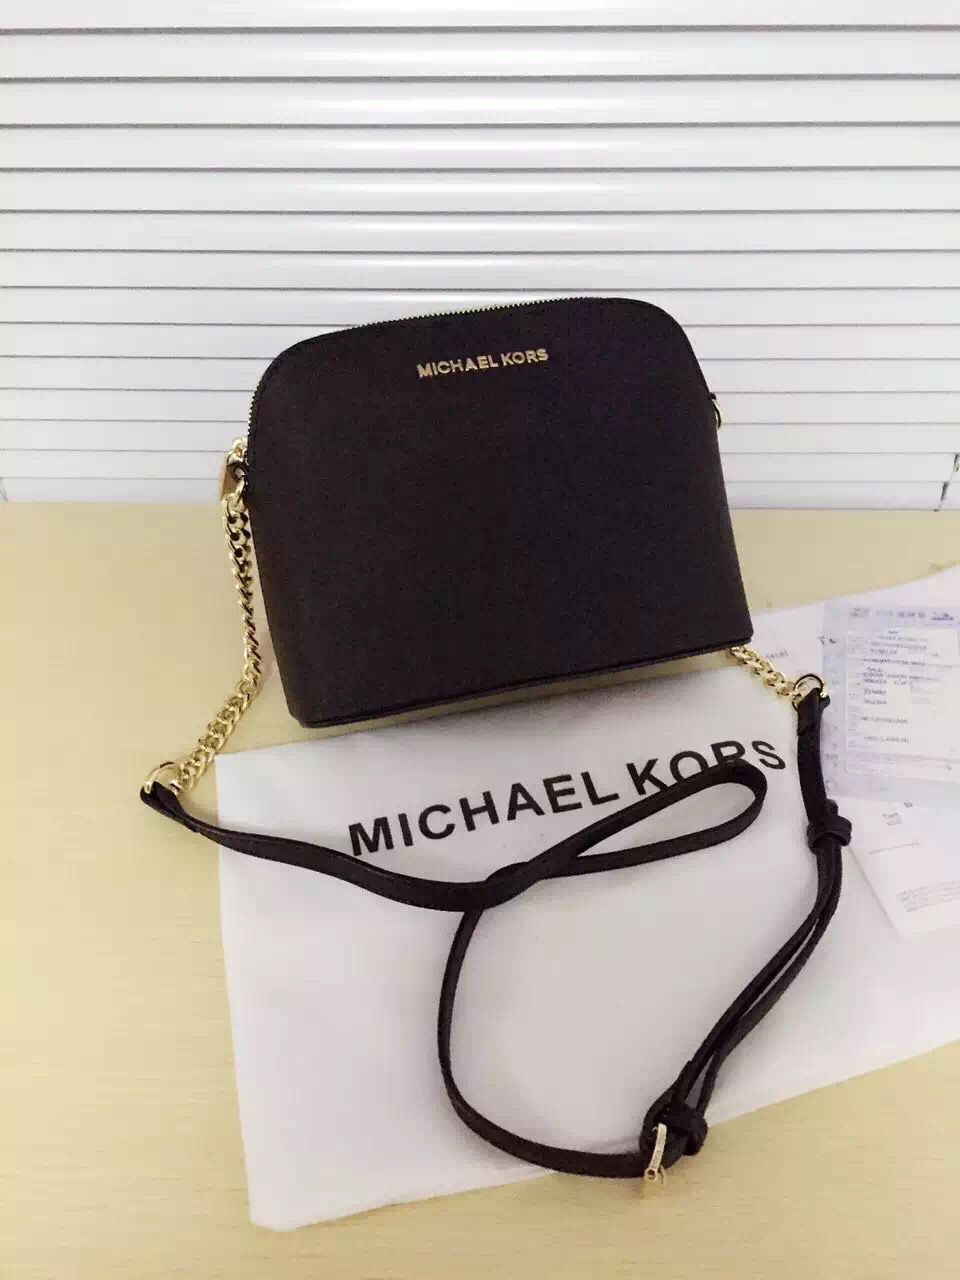 Michael Kors Original Saffiano Leather Top Handle Bag MK2608 Black